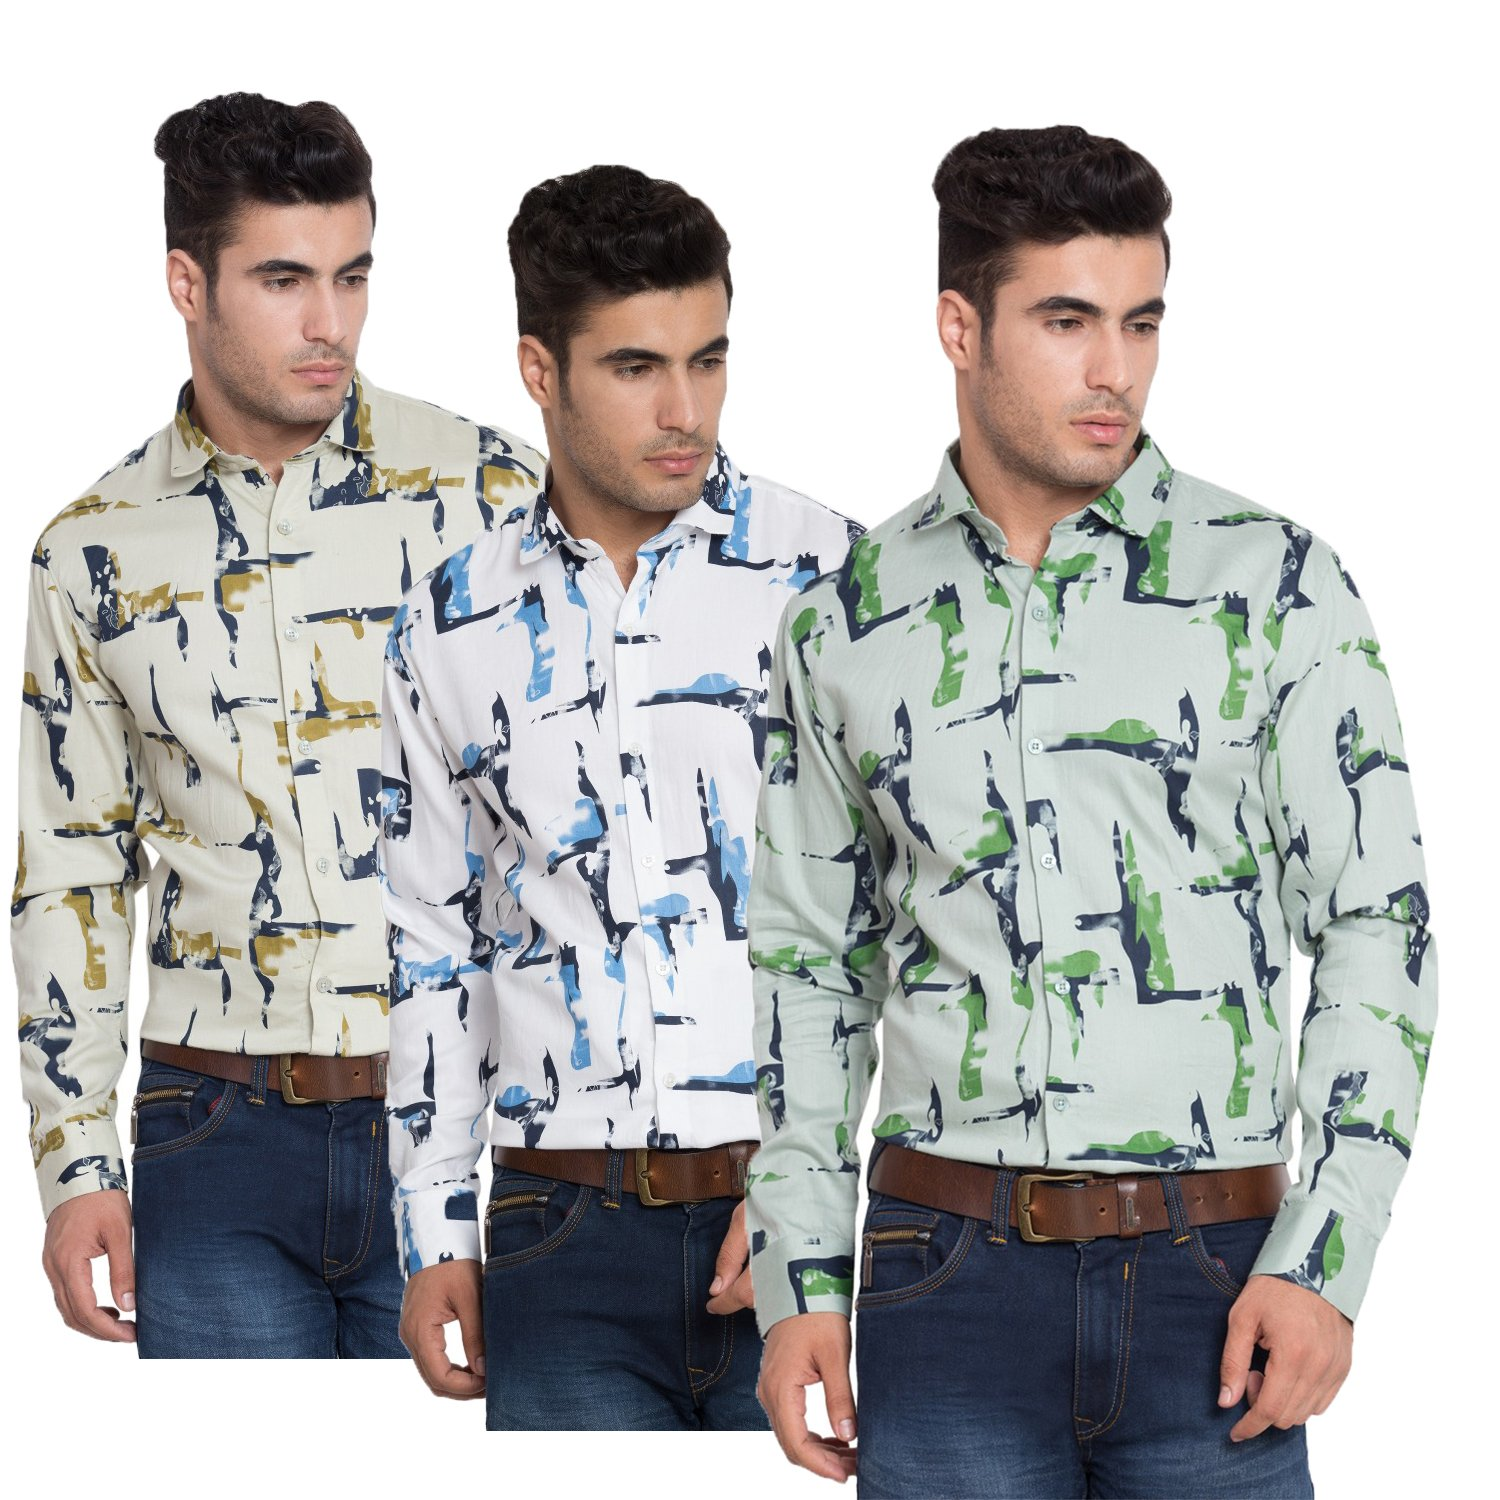 3546e2e5f68dc8 Gadgets Appliances Combo Satin Cotton Printed Men's Shirts-Fit Solid Pack  of 3: Amazon.in: Clothing & Accessories